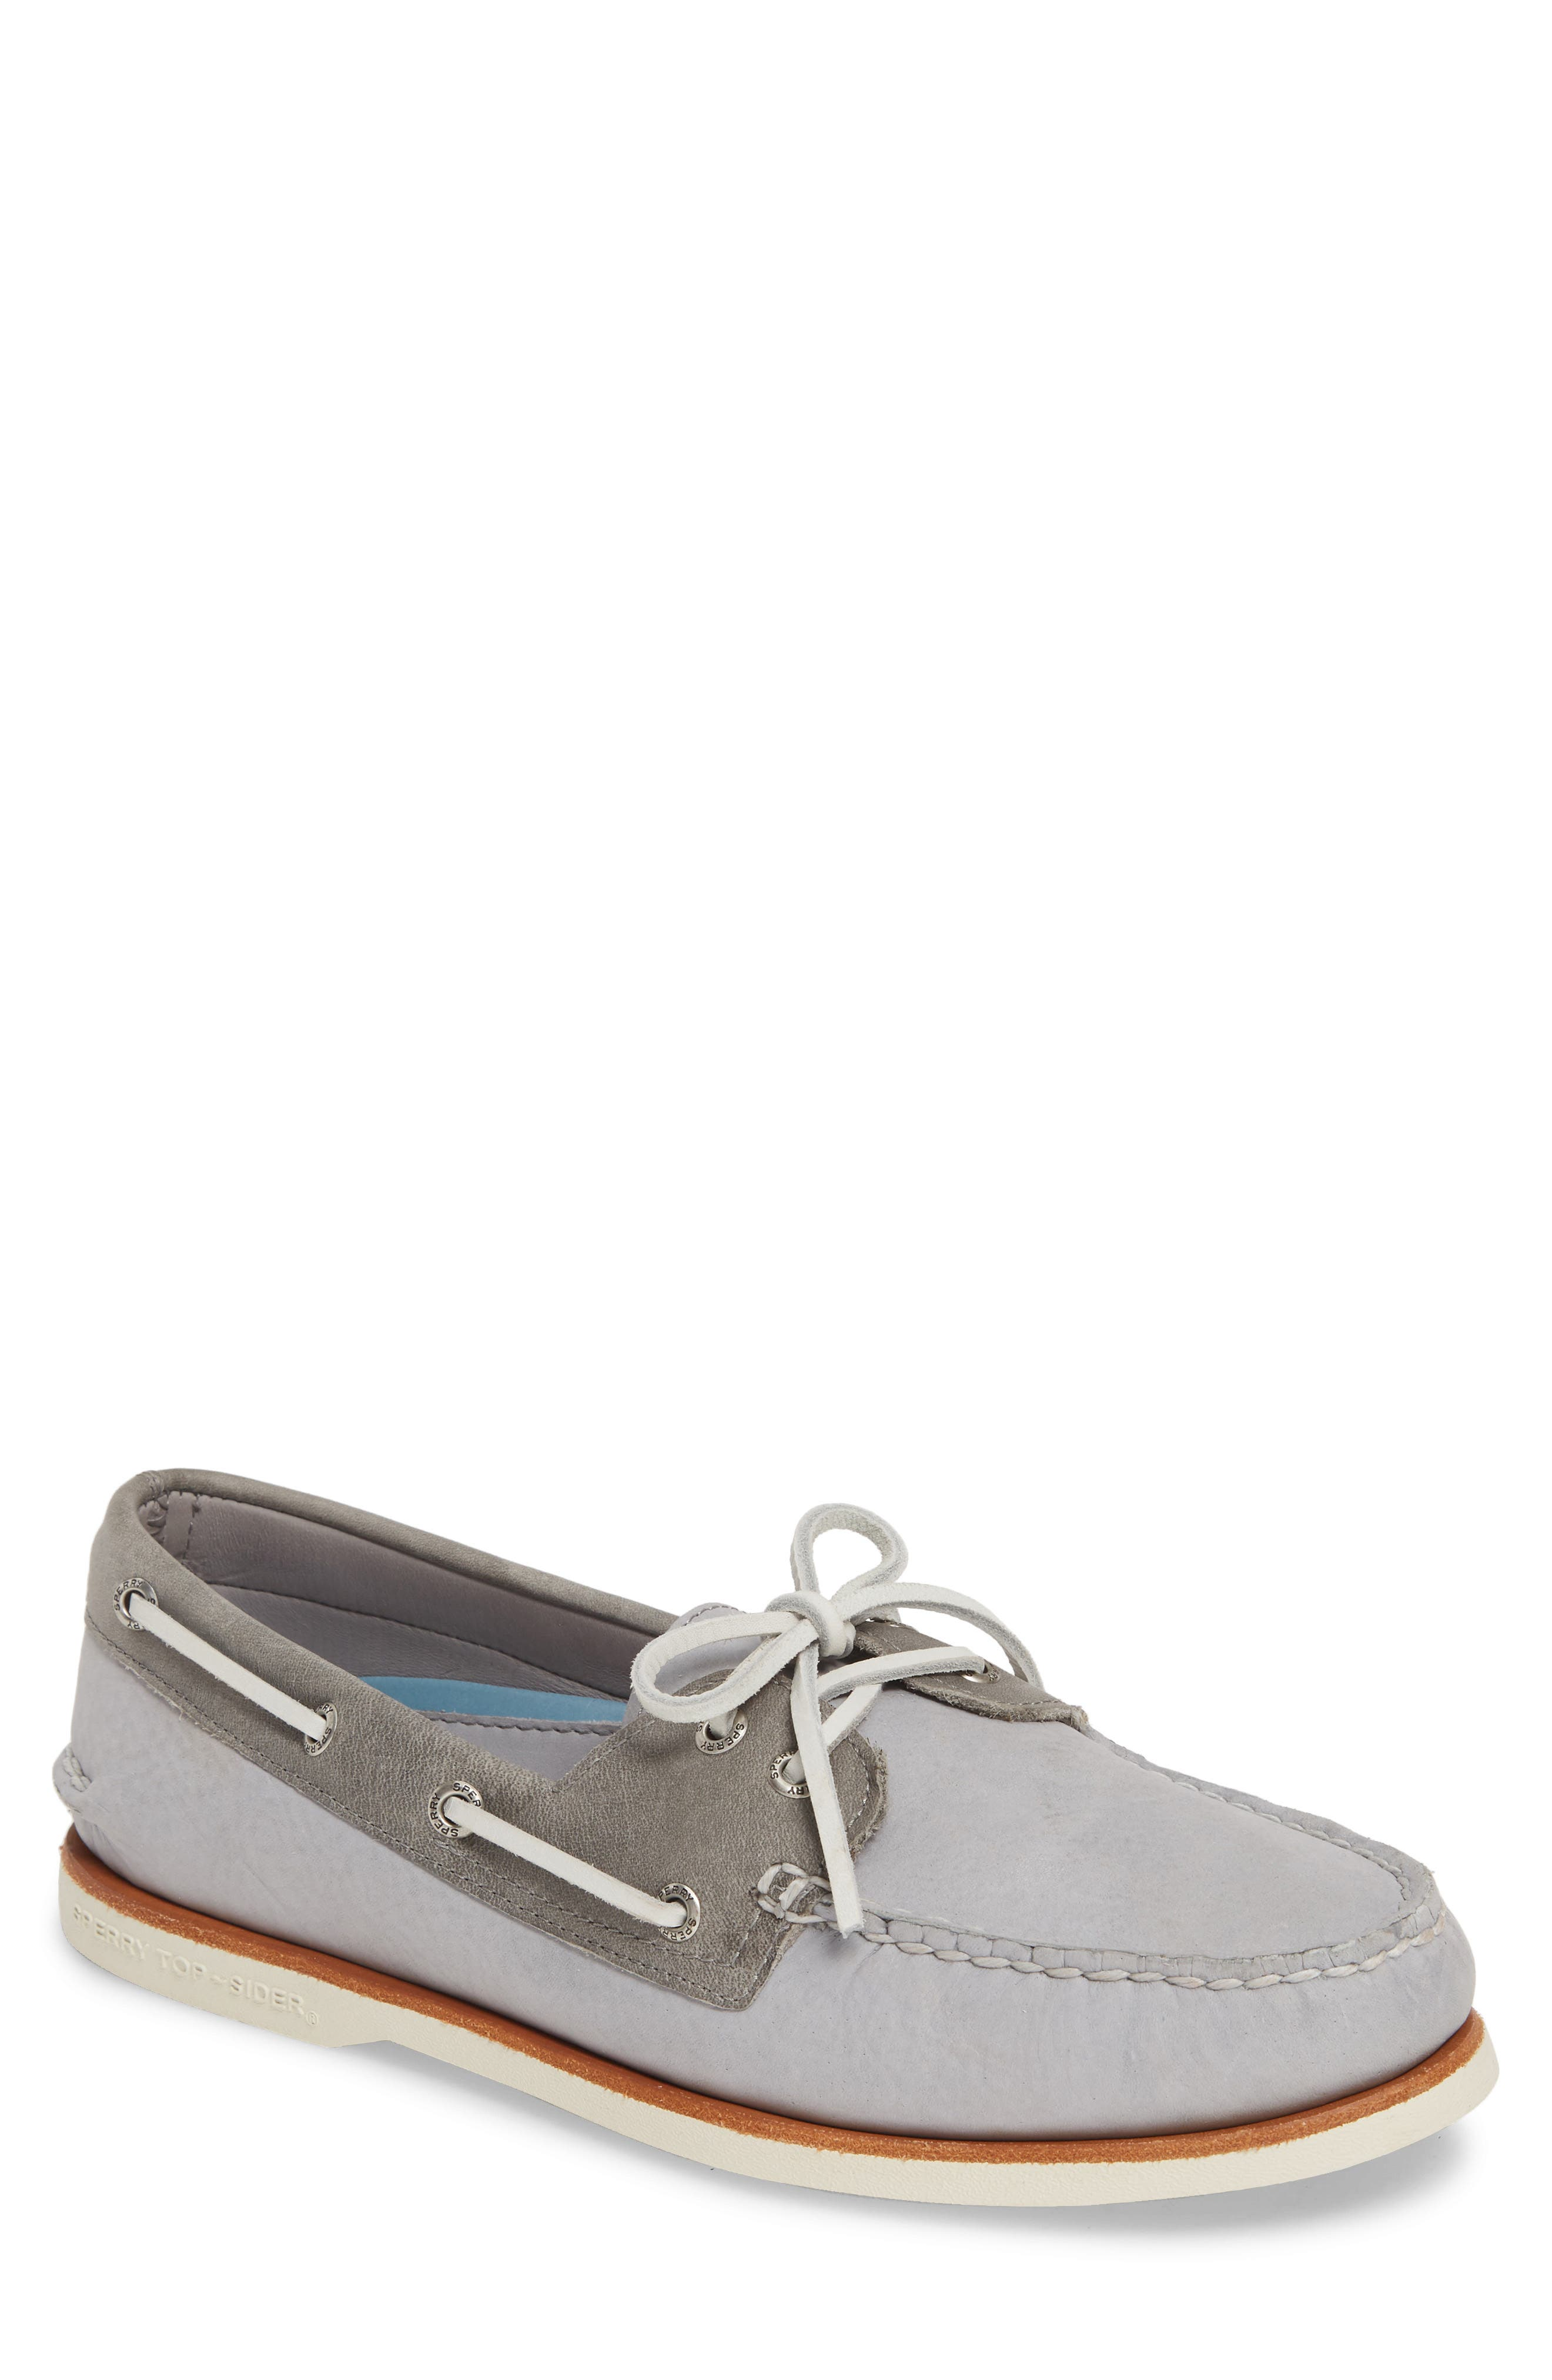 'Gold Cup - Authentic Original' Boat Shoe, Main, color, GREY/GREY LEATHER